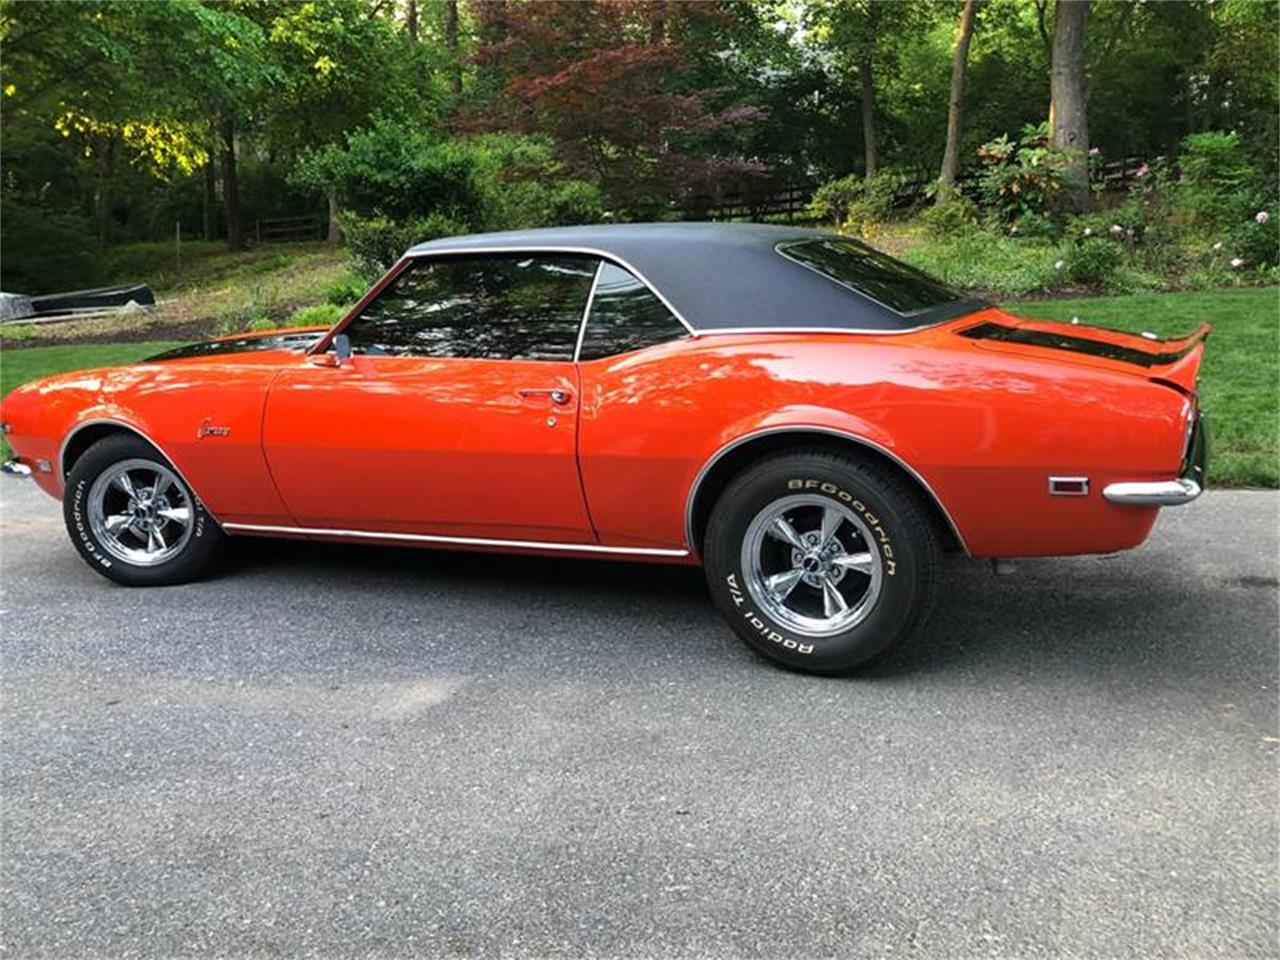 Large Picture of '68 Camaro located in Maryland - $29,900.00 - Q2XX